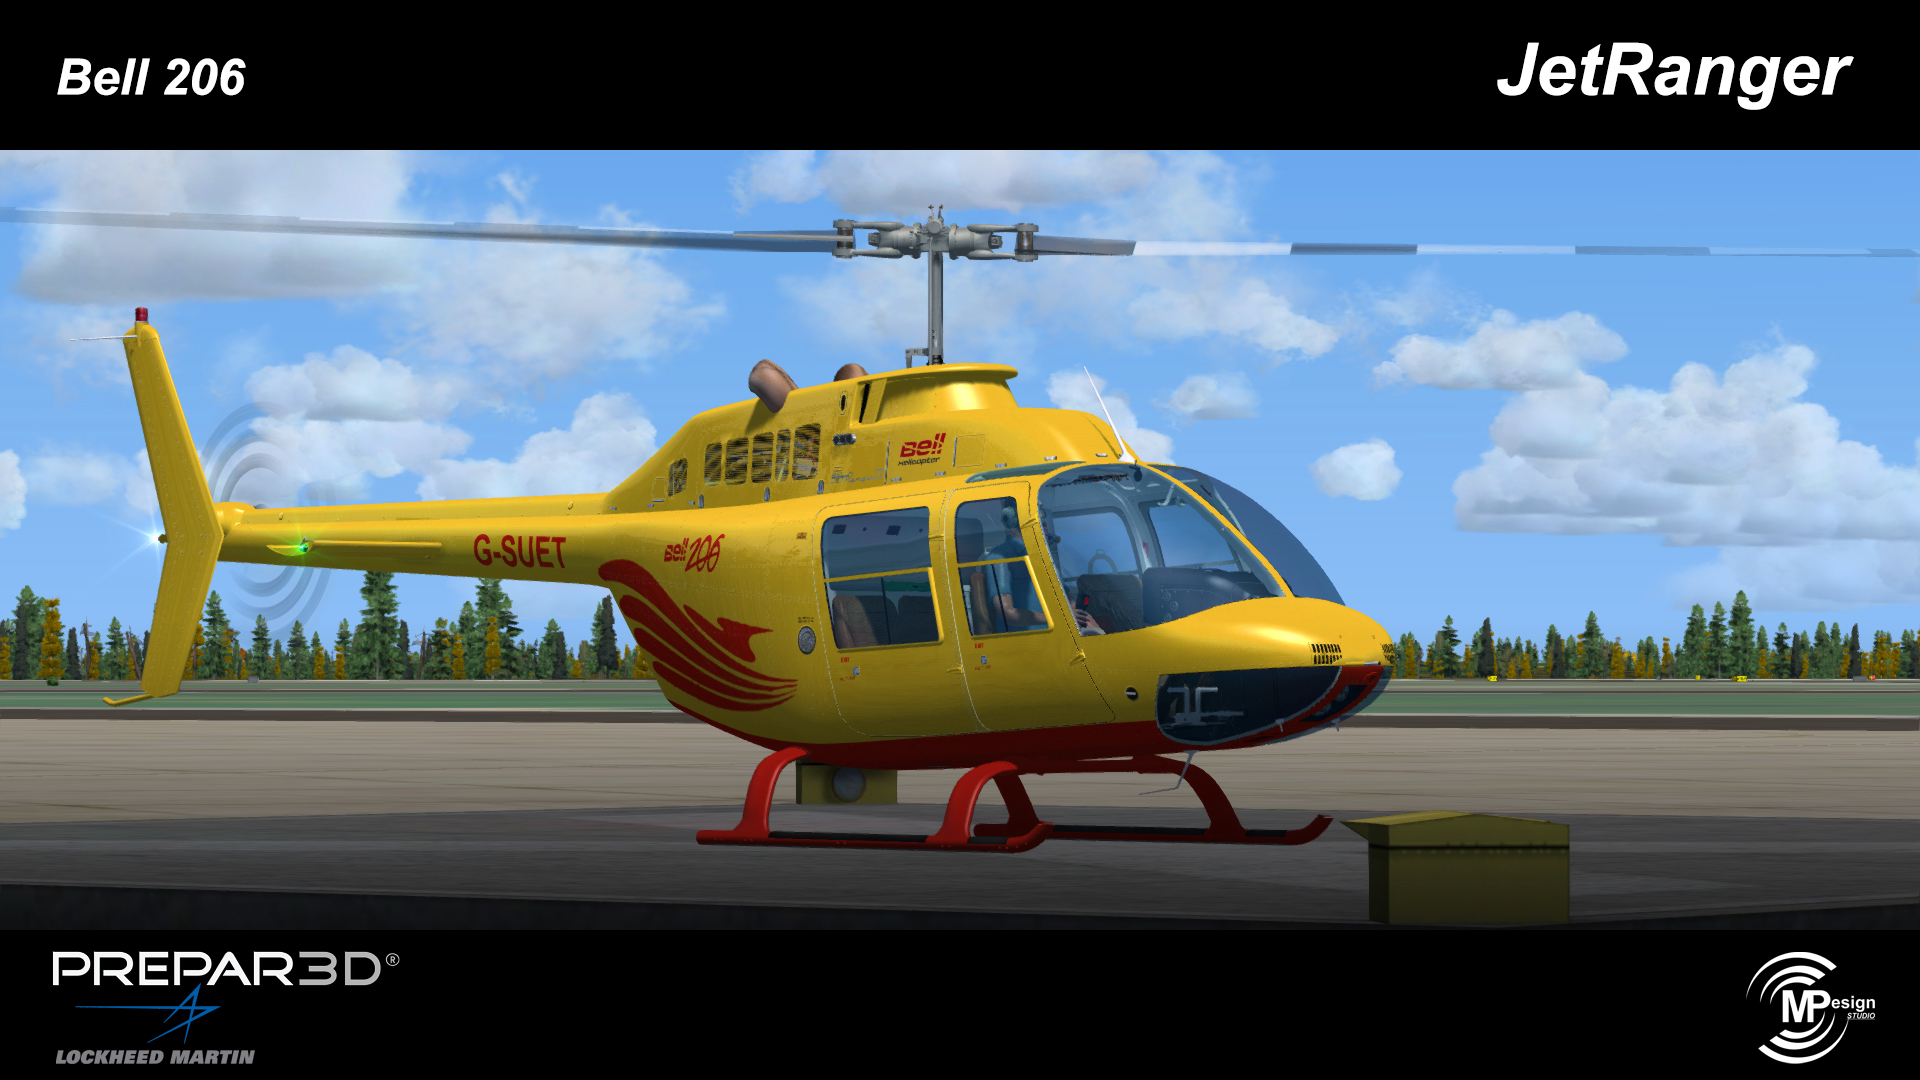 MP DESIGN STUDIO - BELL 206 P3D